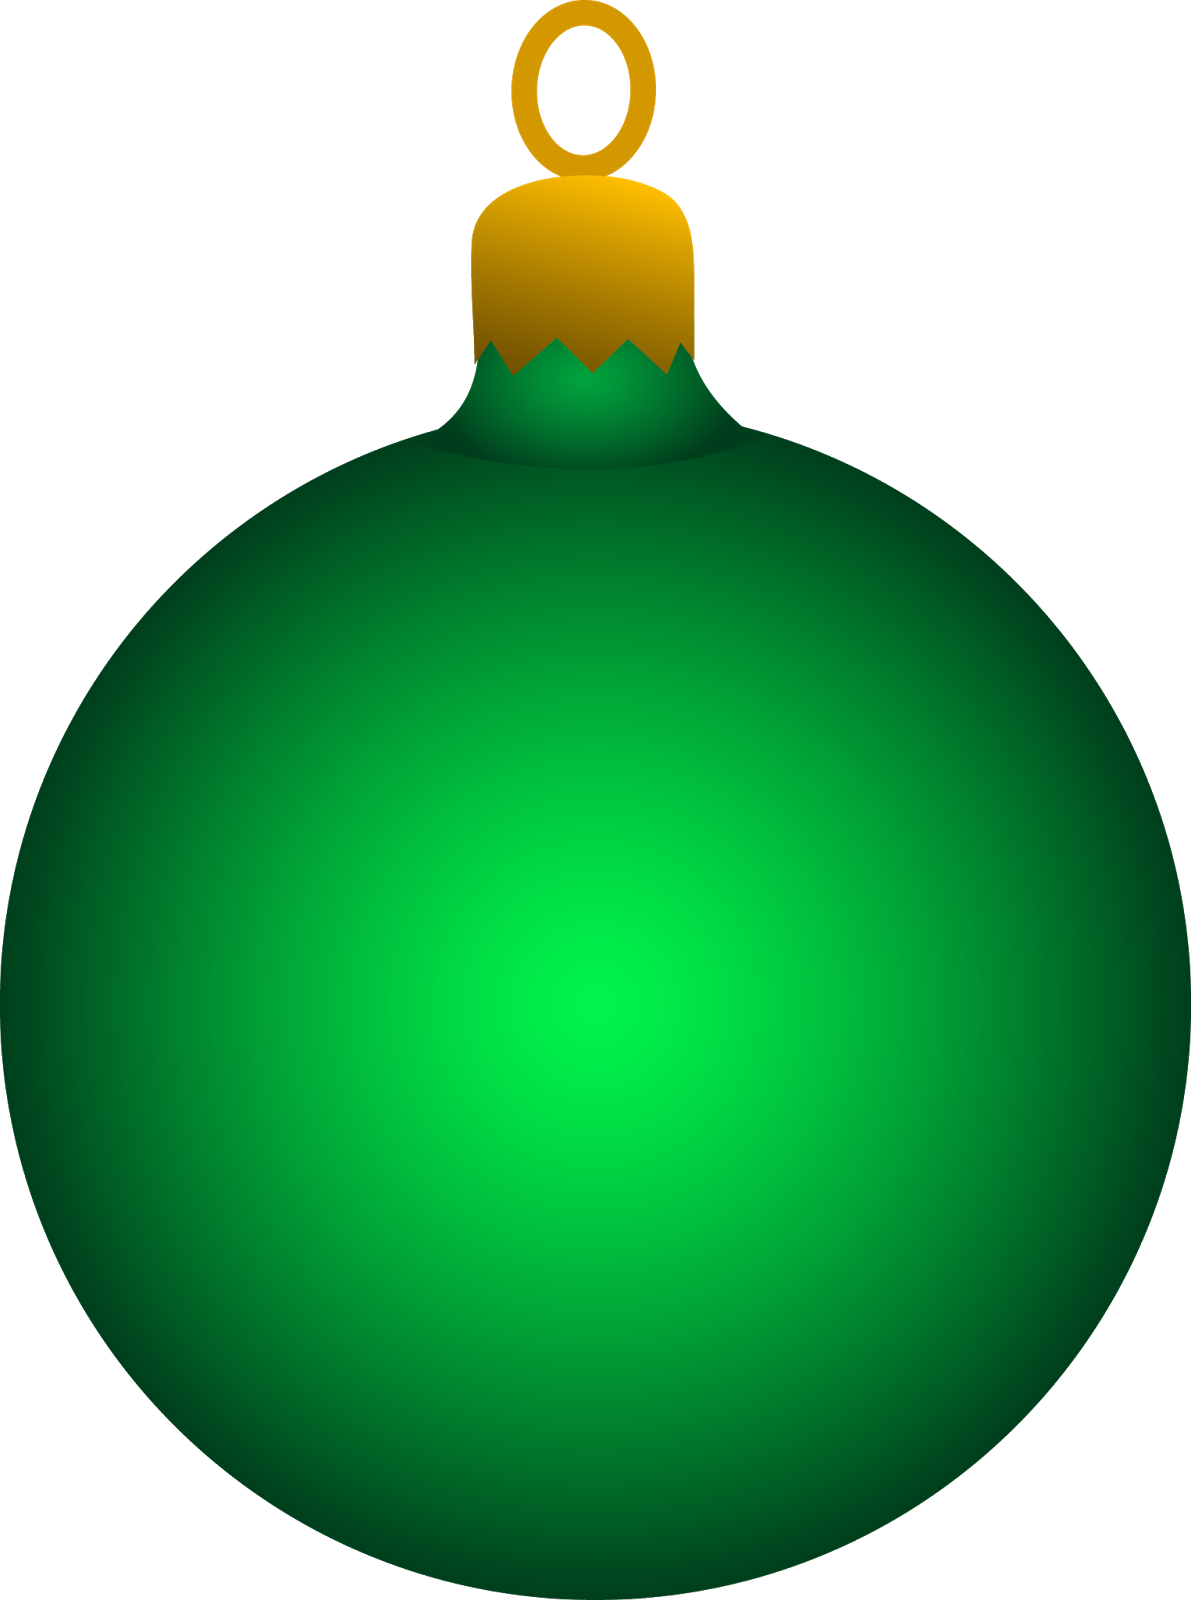 Christmas tree ornaments clipart.